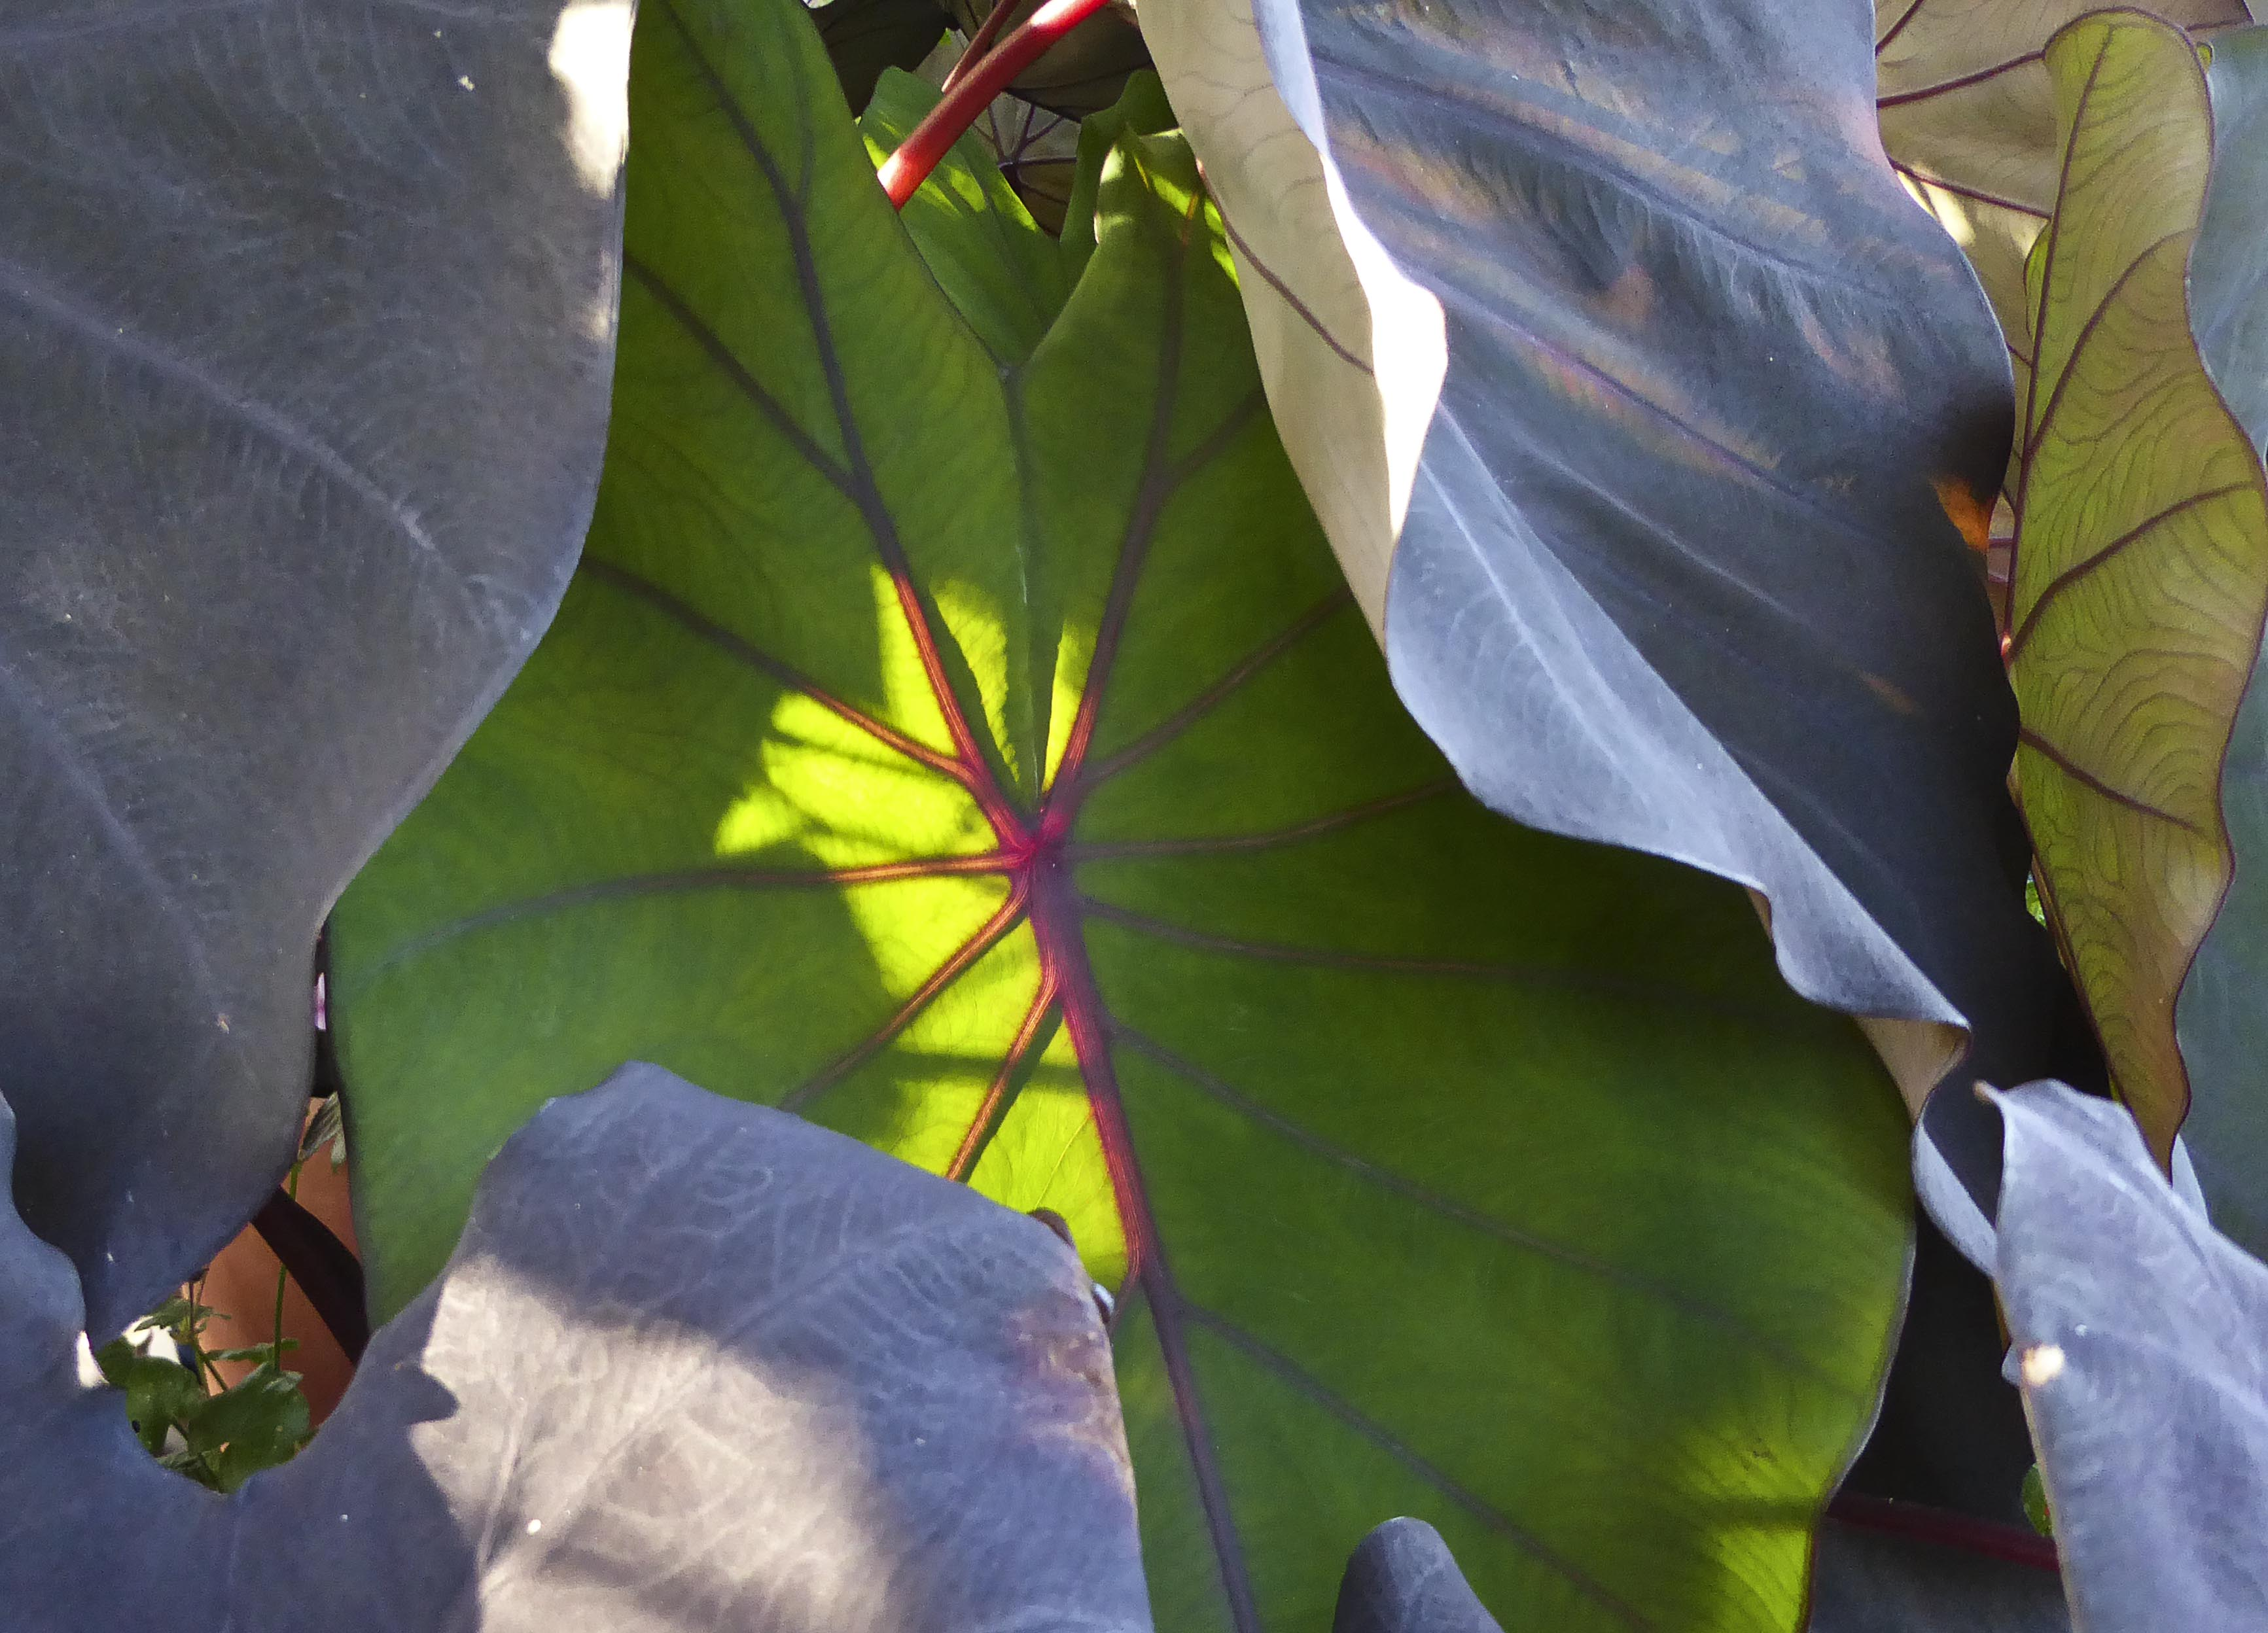 Kew Gardens – The Same Plant in Different Light